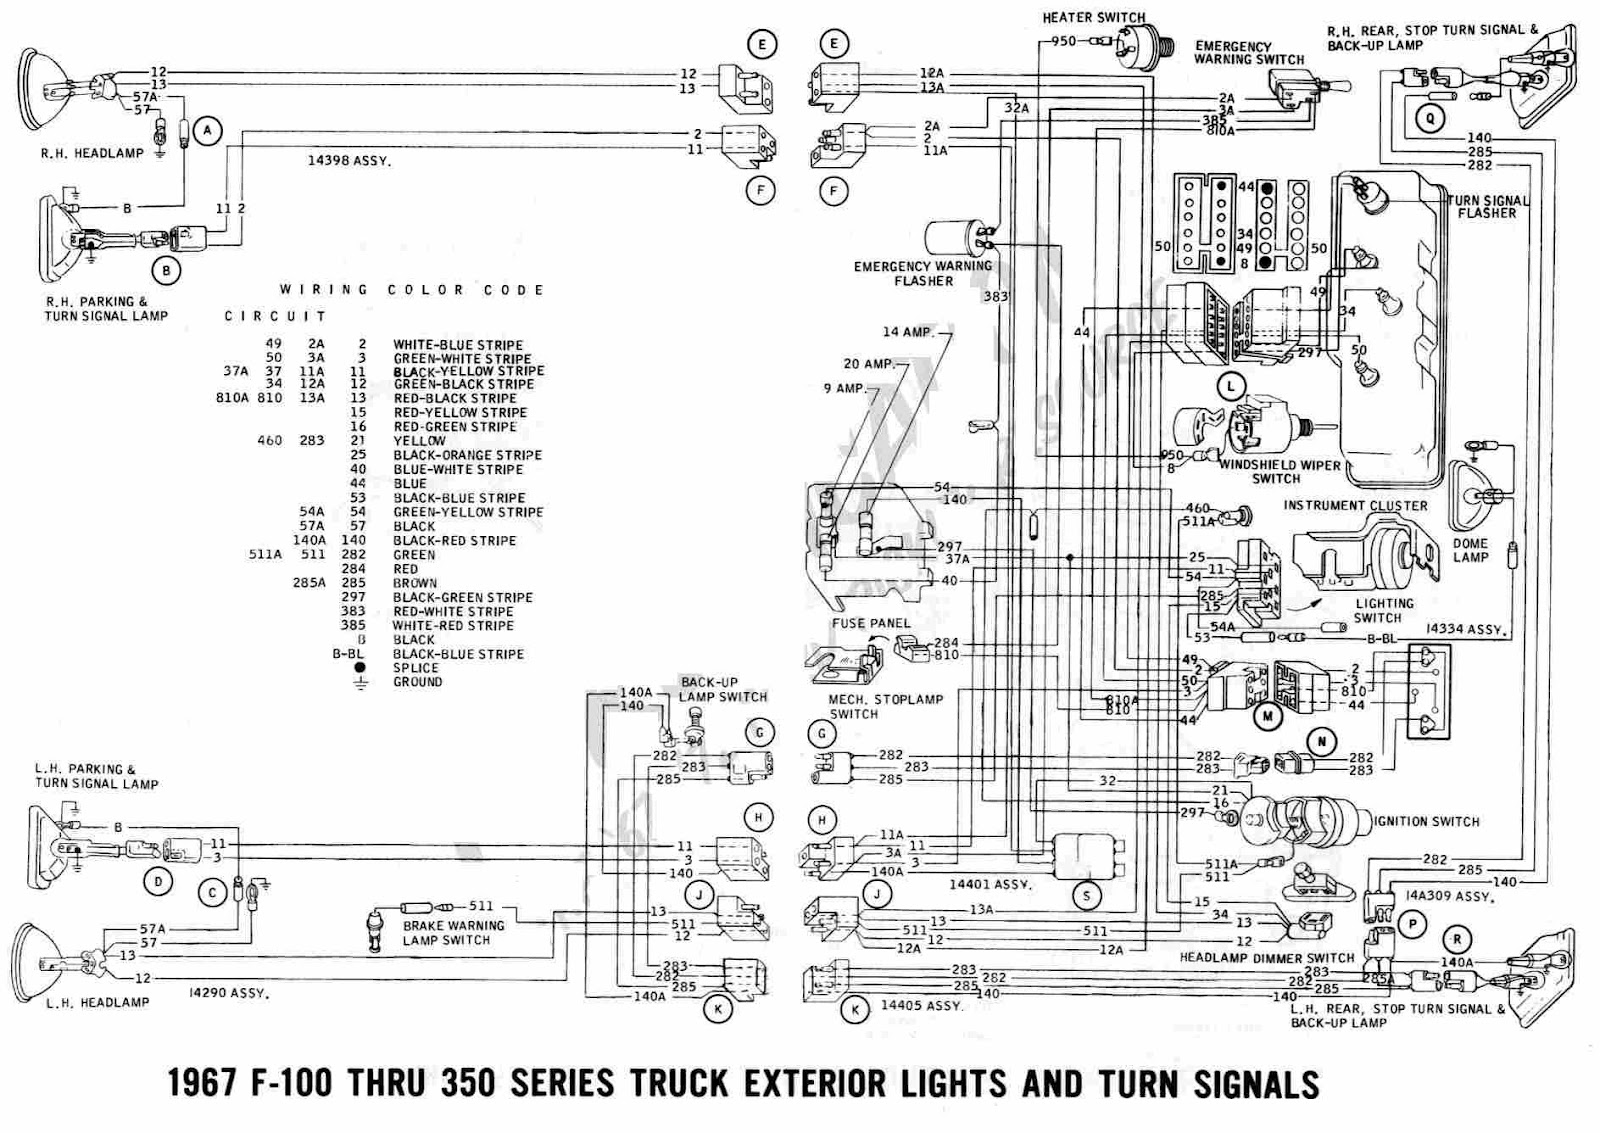 2000 ford f 350 turn signal wiring diagram jhLegkn ford f650 turn signal wiring diagram image details f650 wiring diagram at mifinder.co